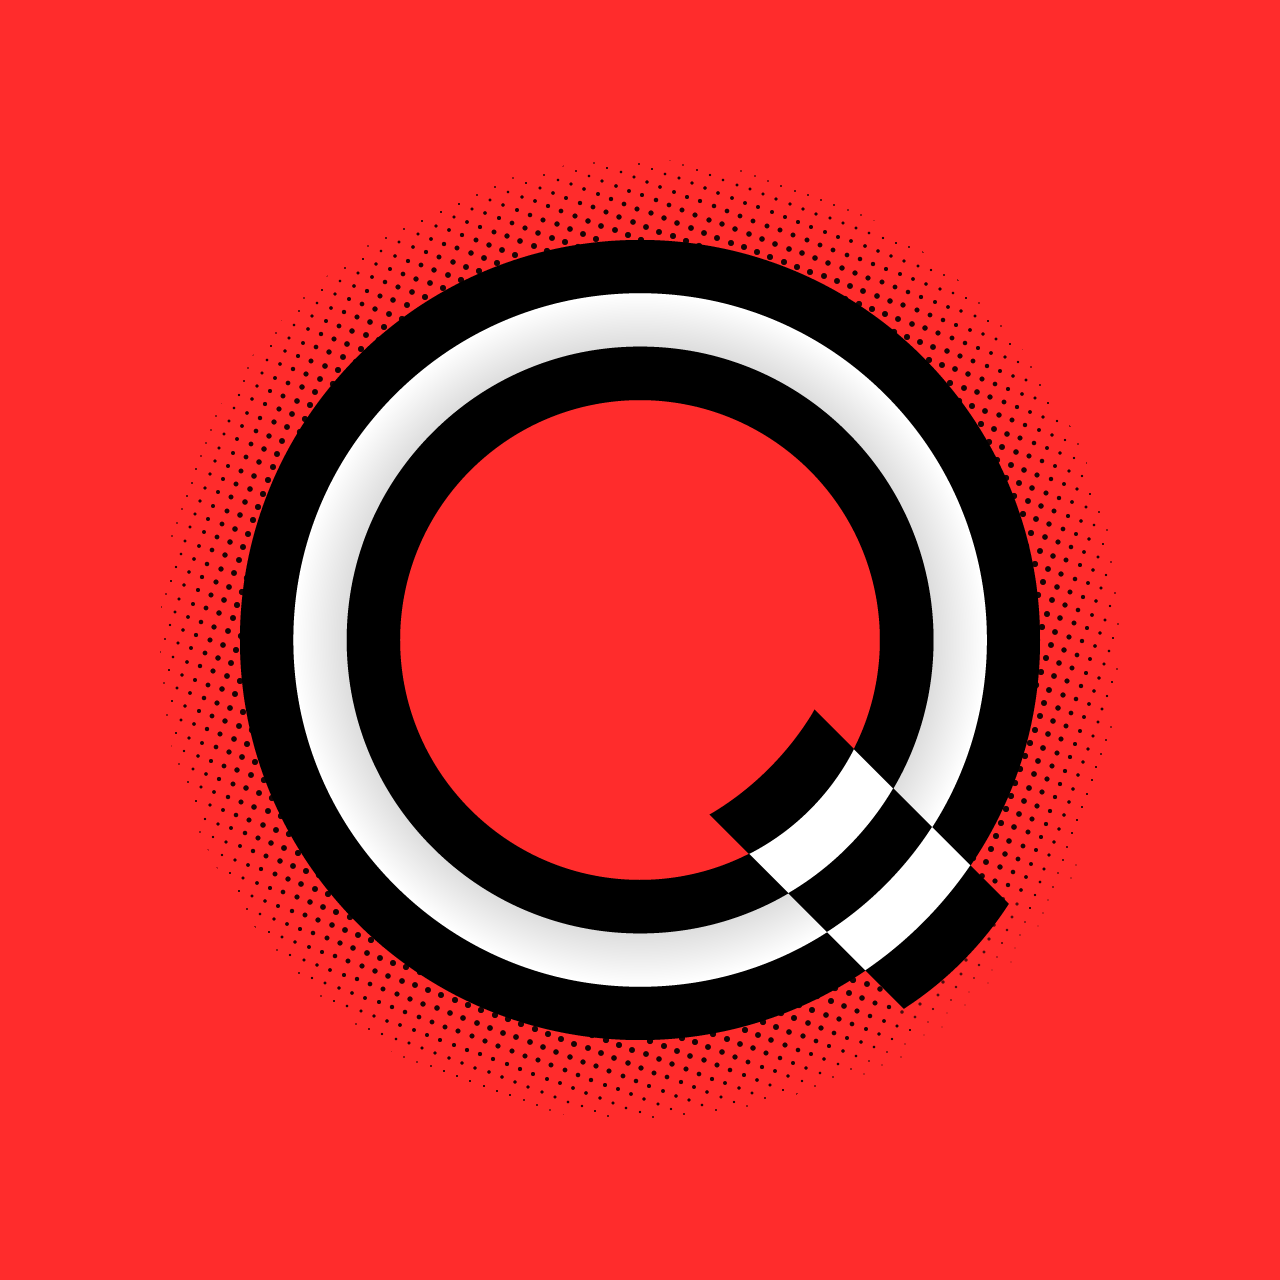 My Q submission for 36 Days of Type